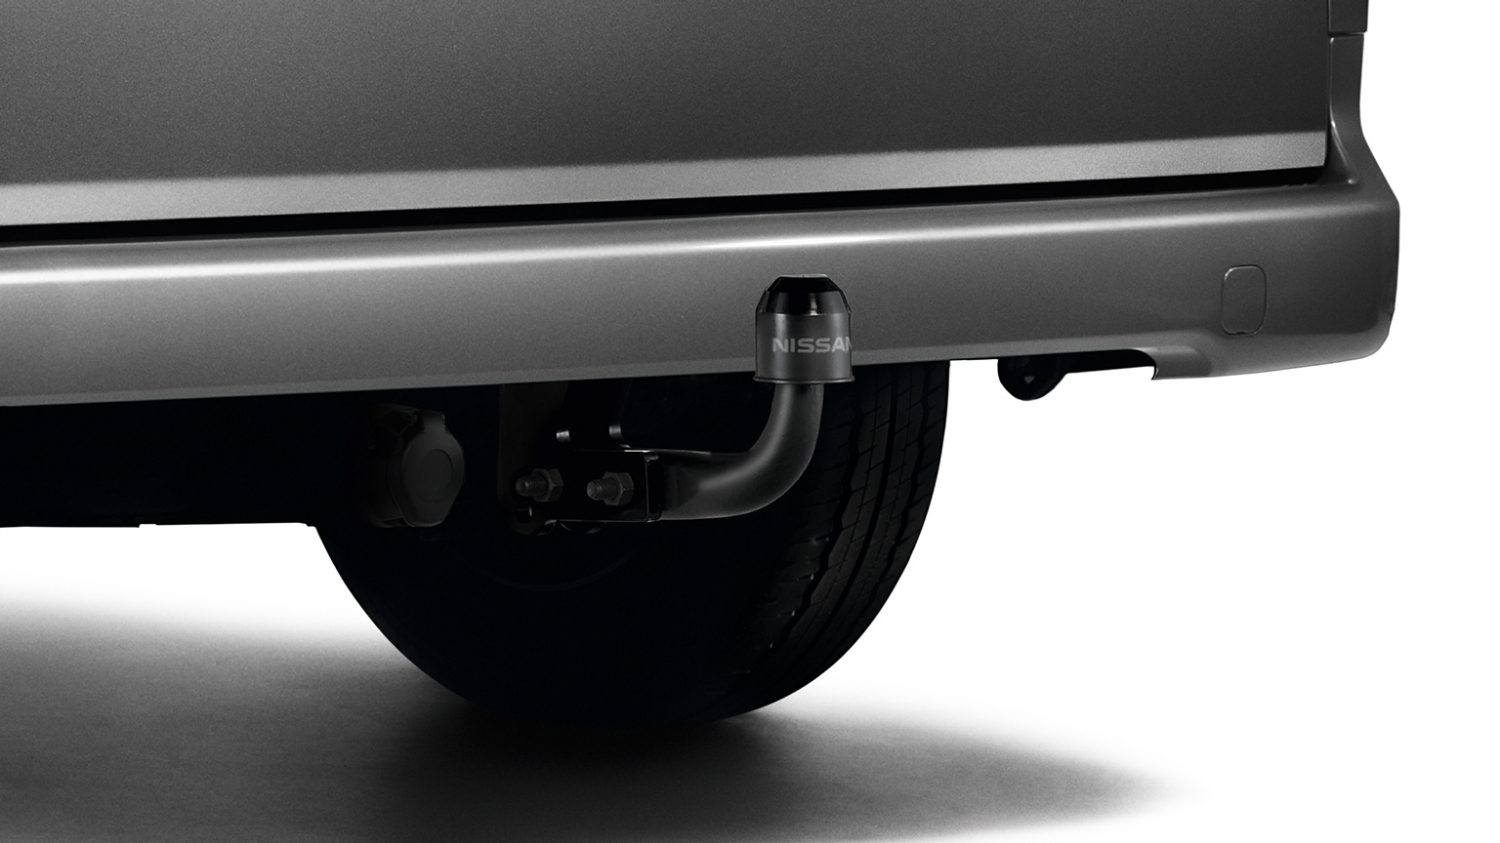 Nissan NV200 - Transportation - Fixed towbar